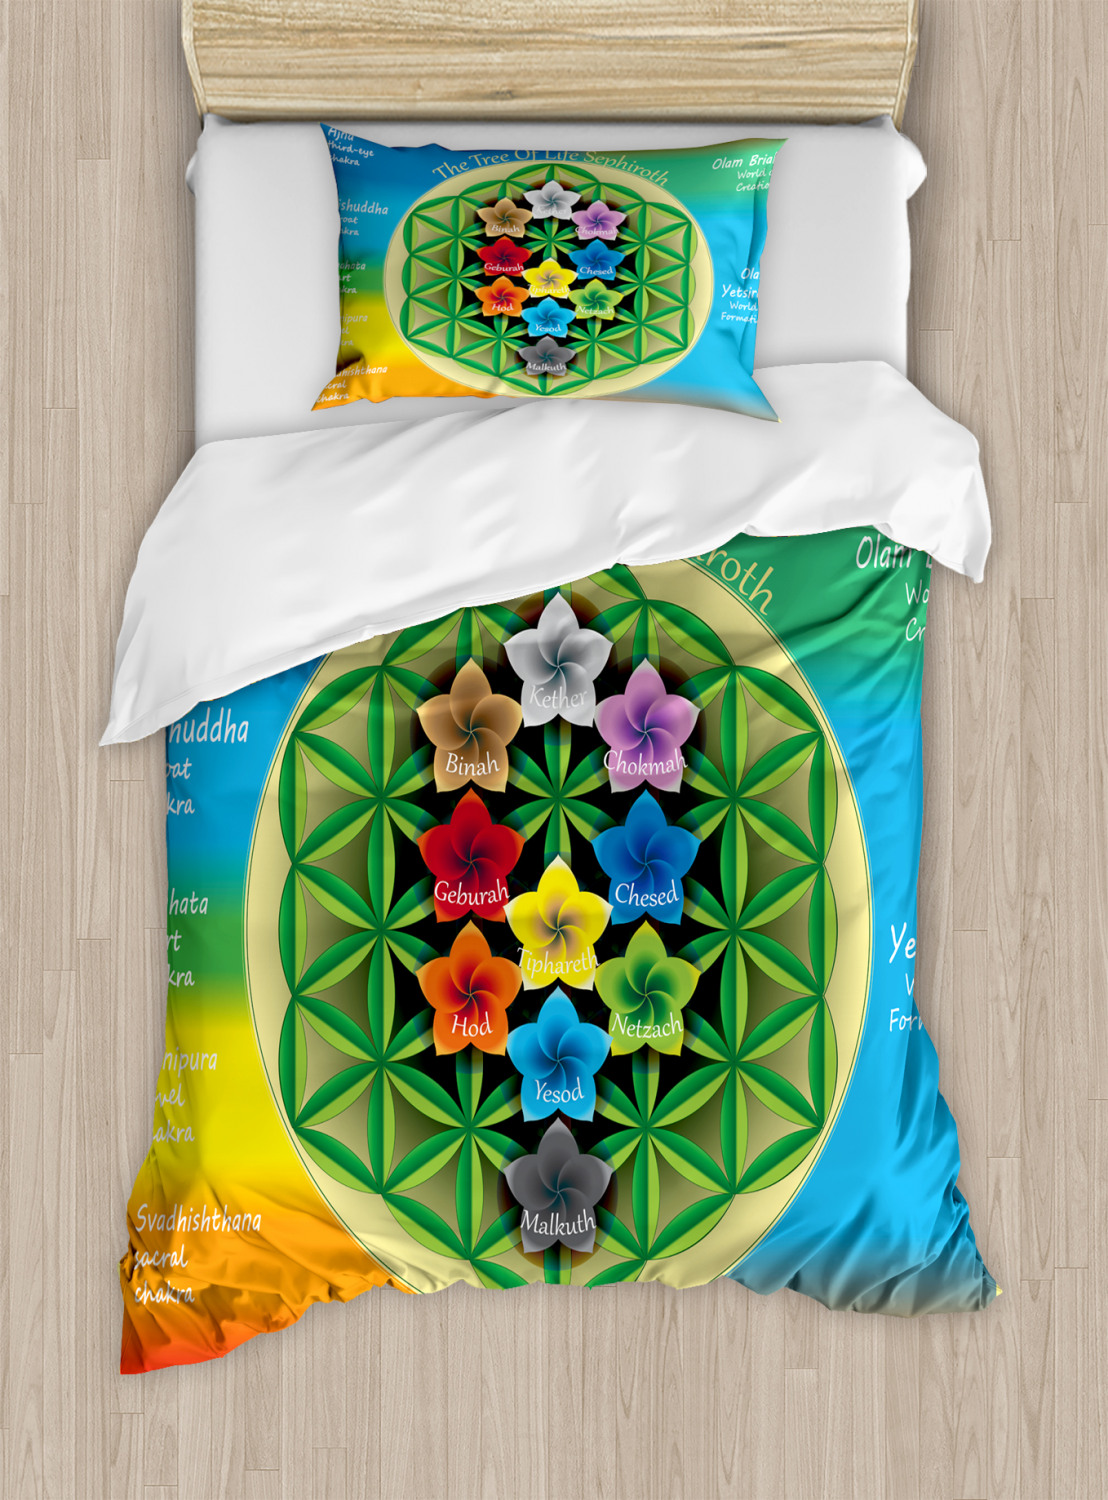 Flower-of-Life-Duvet-Cover-Set-Twin-Queen-King-Sizes-with-Pillow-Shams thumbnail 7